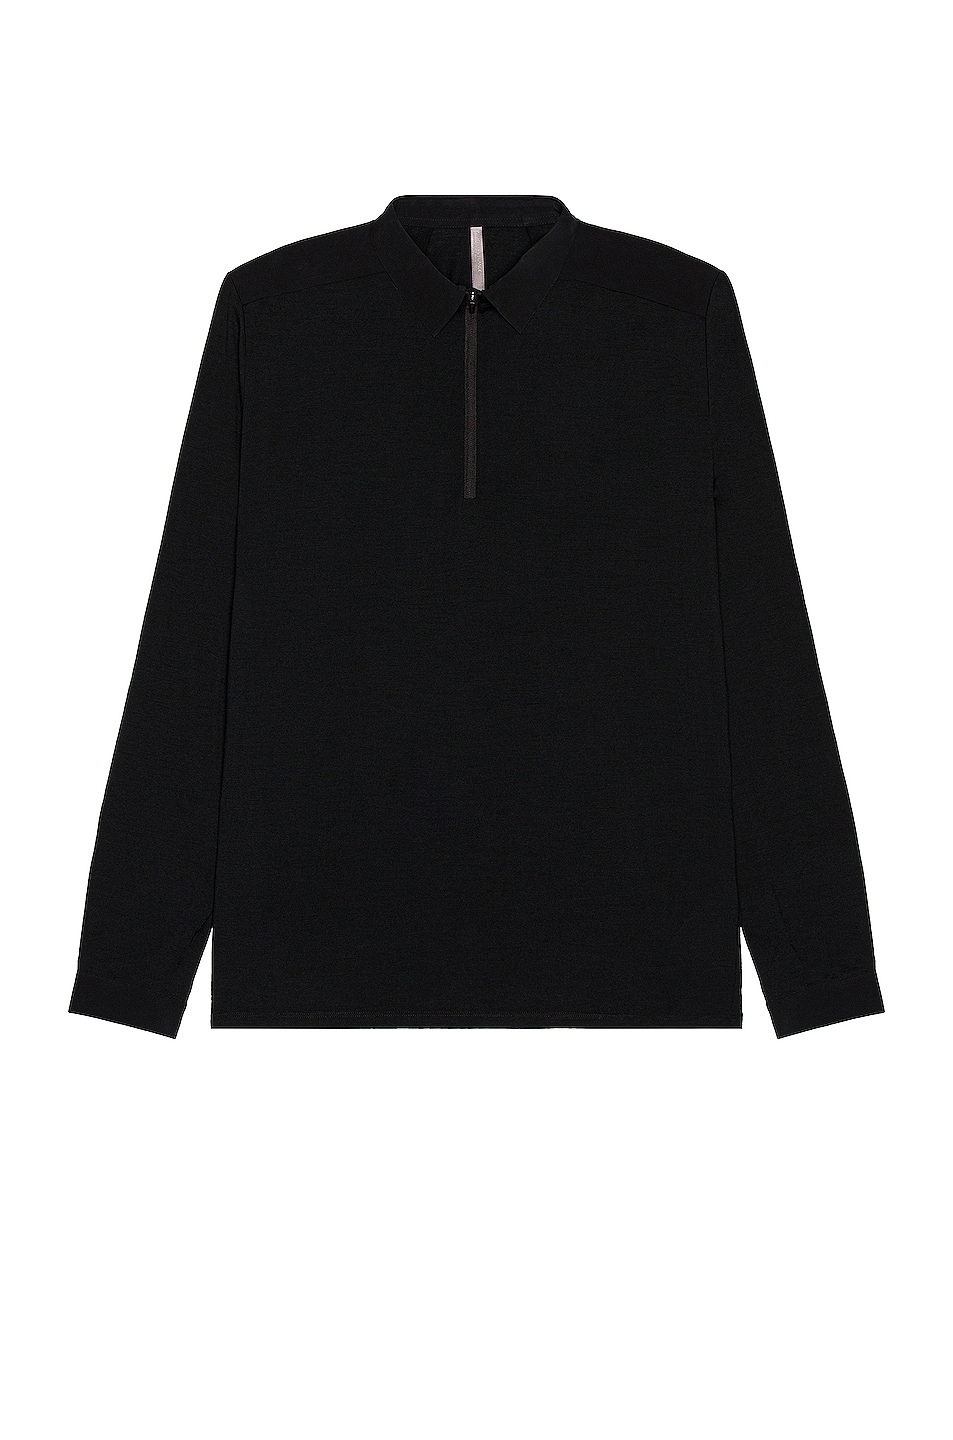 Image 1 of Veilance Frame LS Polo in Black